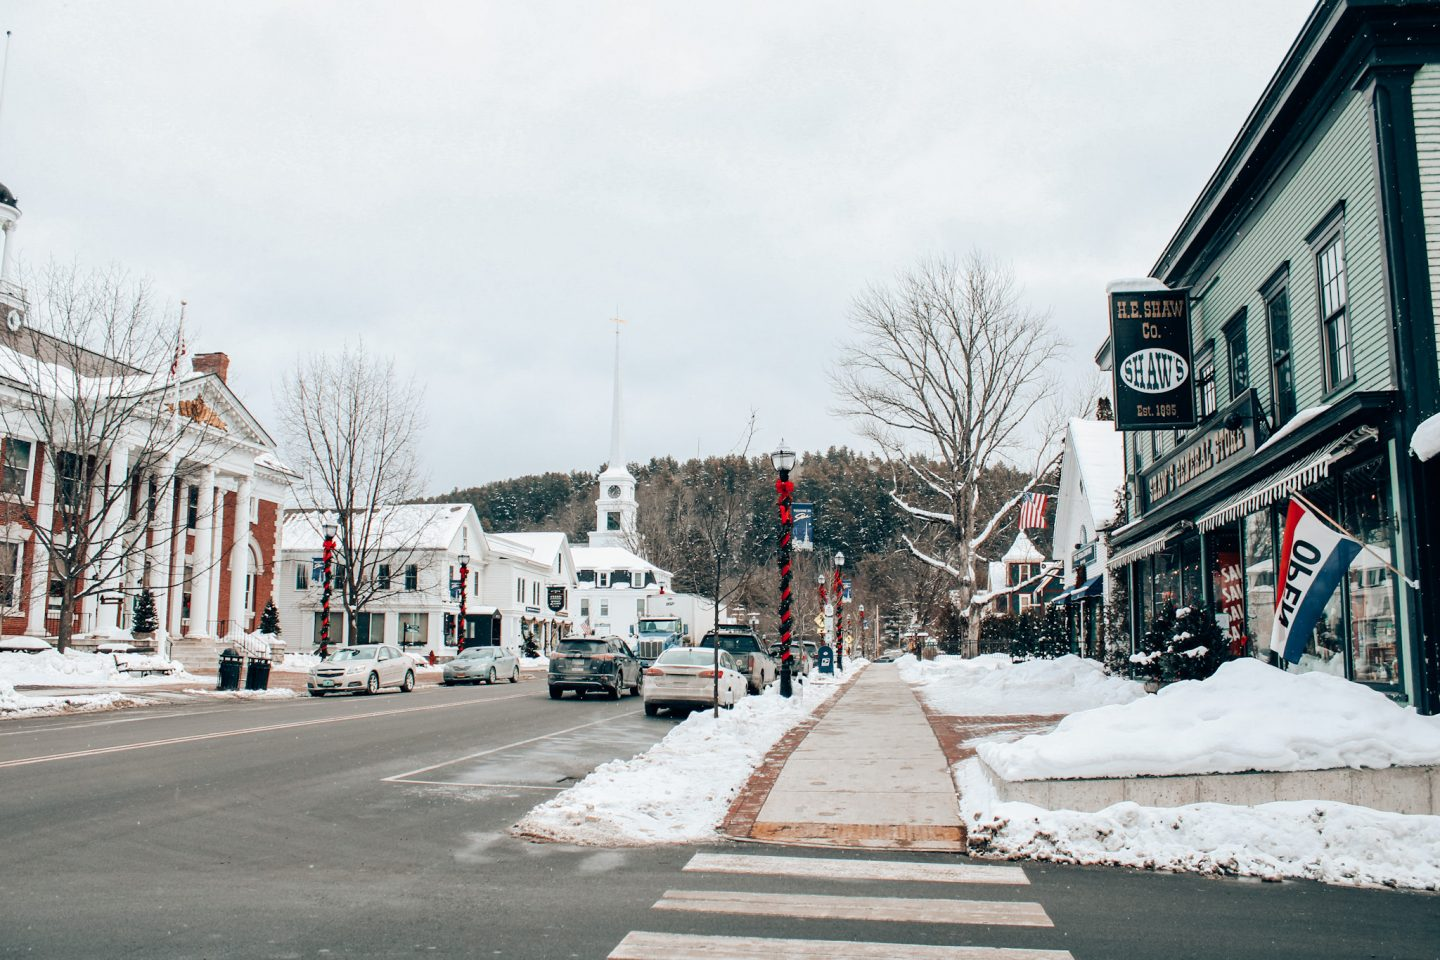 Downtown Stowe, VT in January